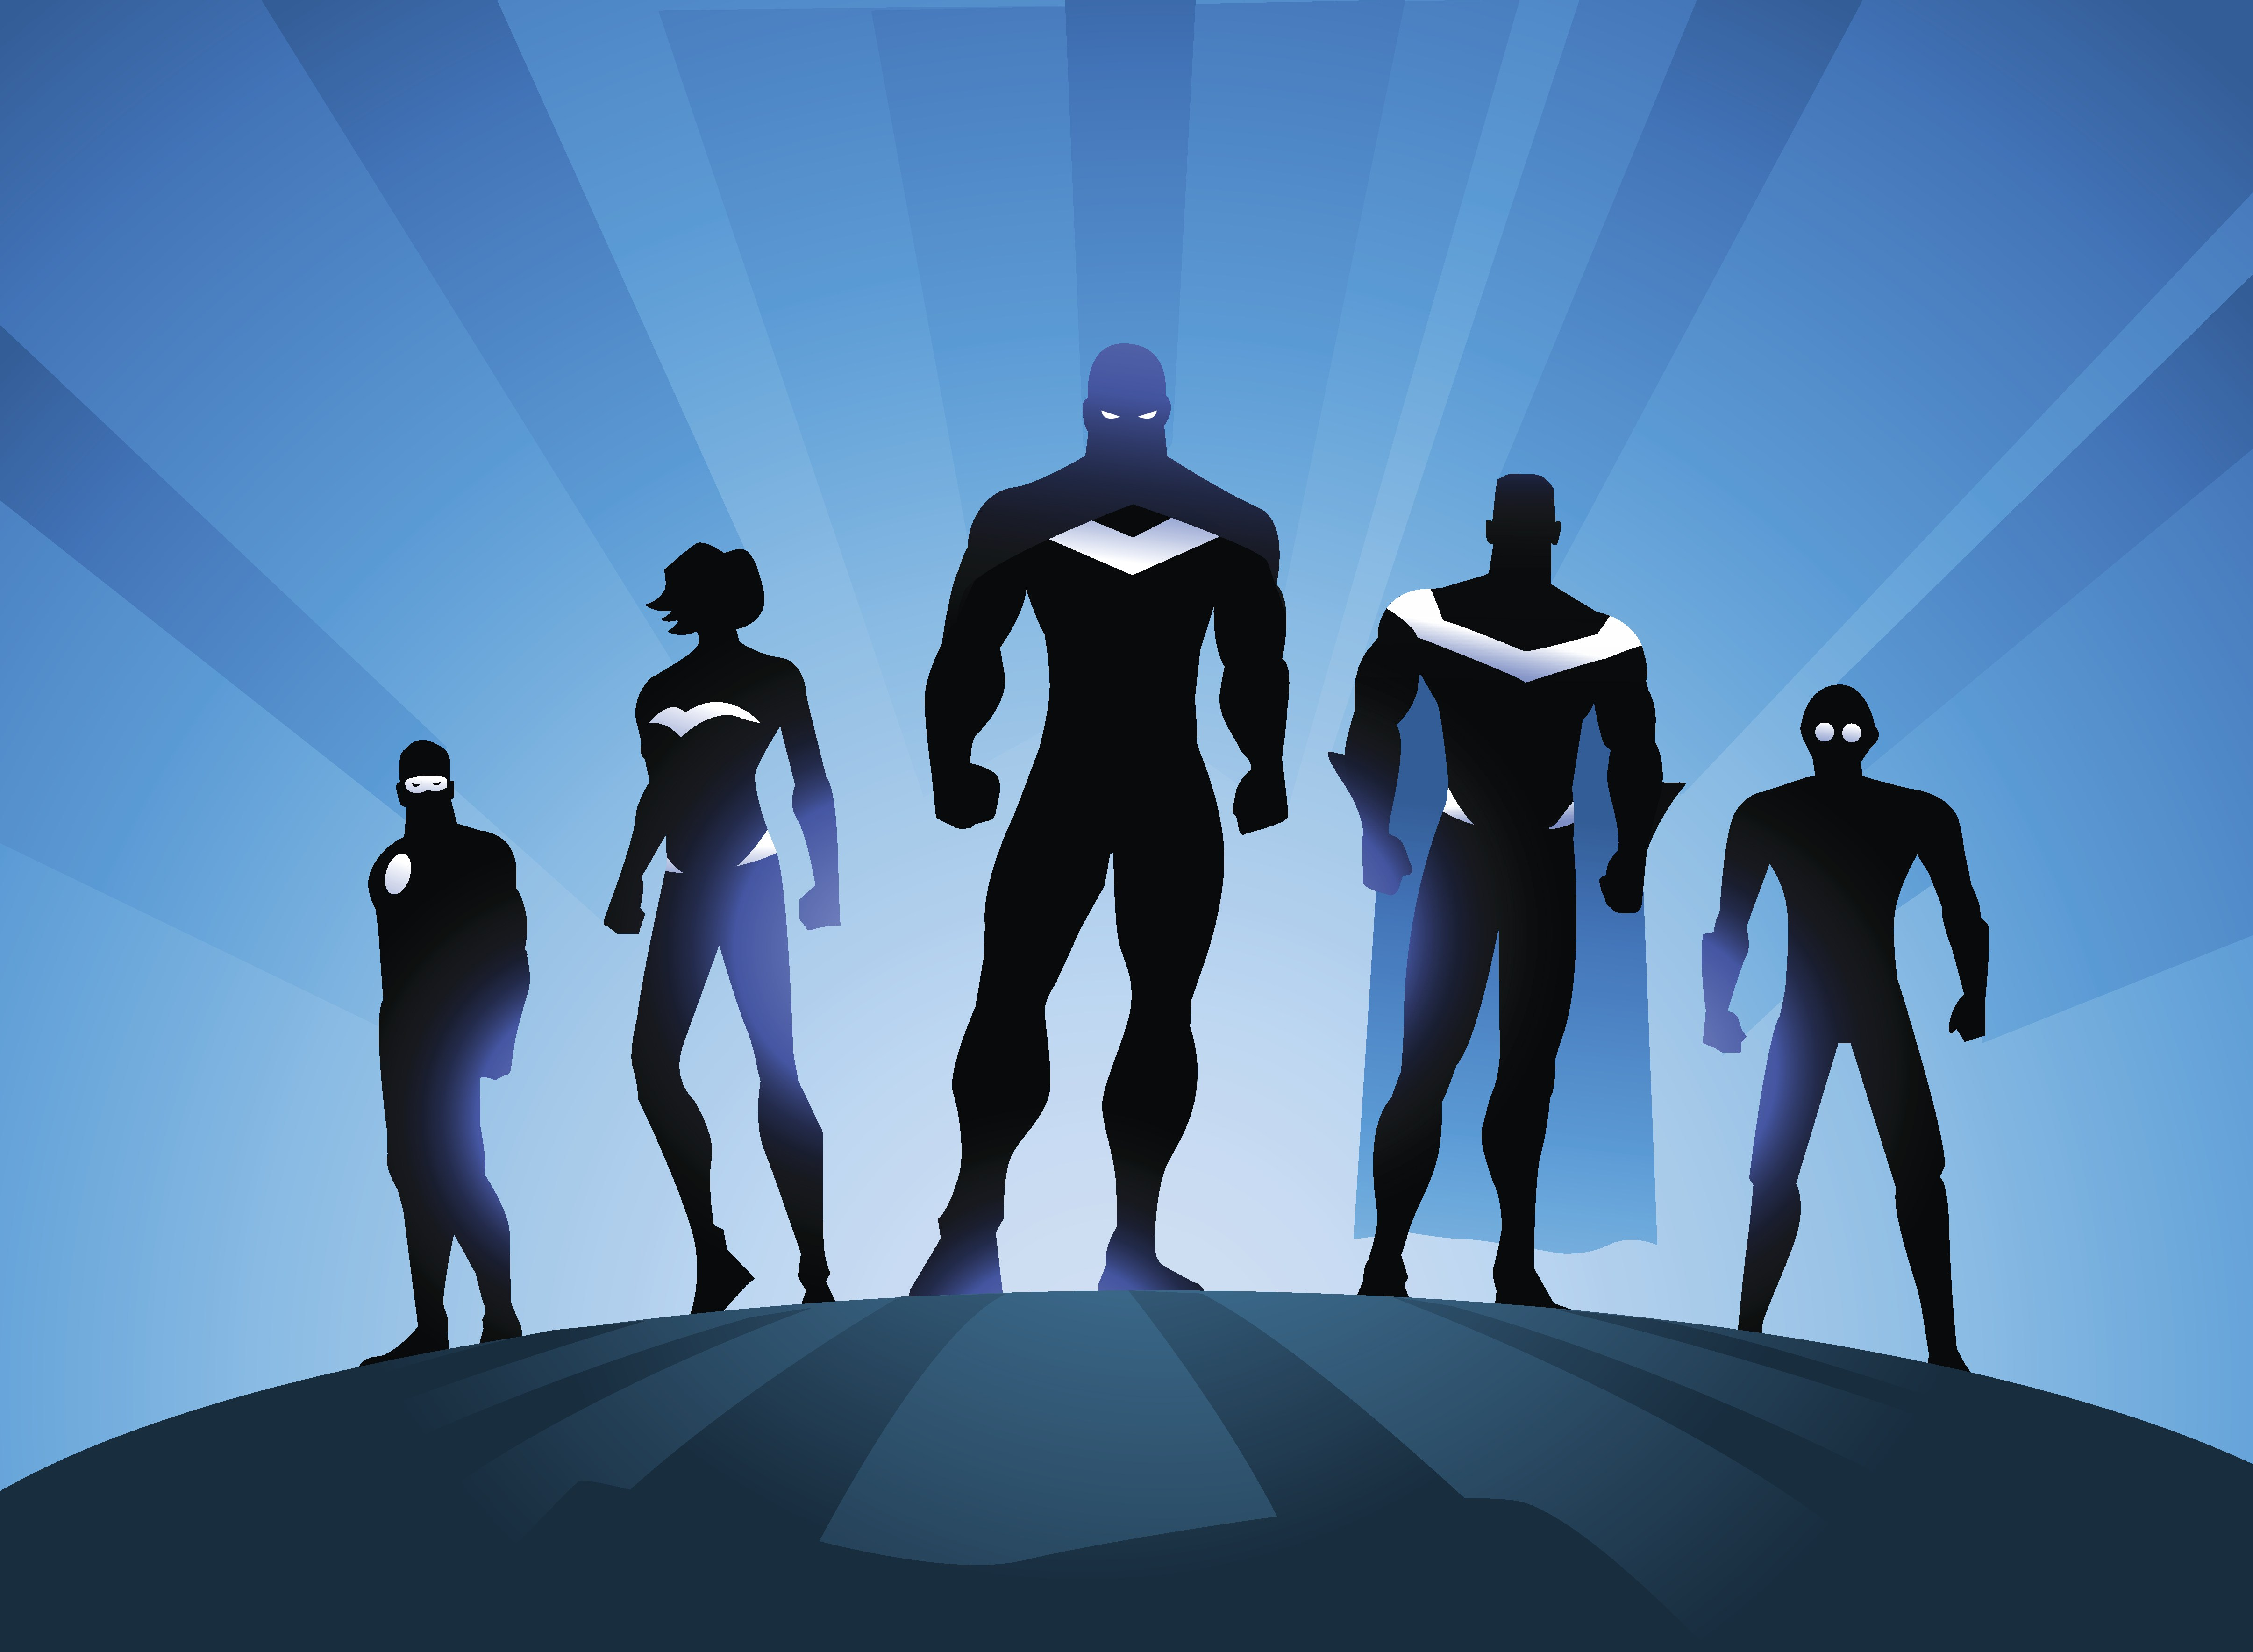 Superheroes Minimalism 4k Hd Superheroes 4k Wallpapers Images